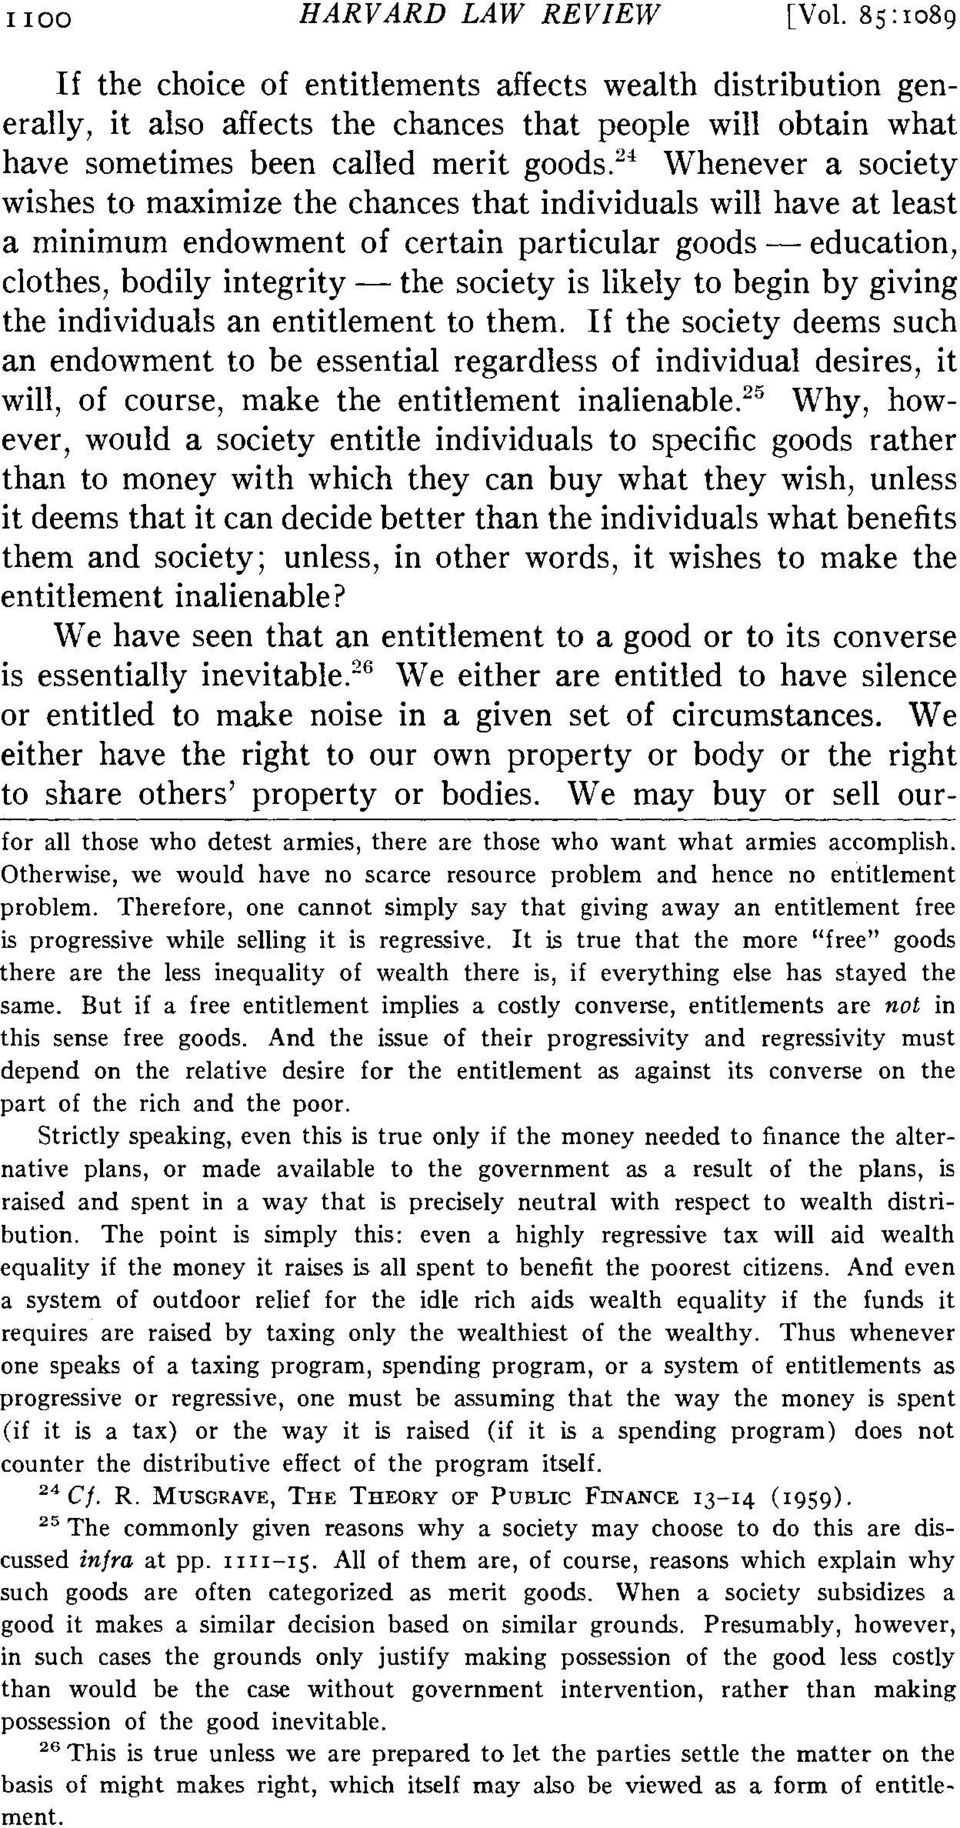 24 Whenever a society wishes to maximize the chances that individuals will have at least a minimum endowment of certain particular goods- education, clothes, bodily integrity - the society is likely